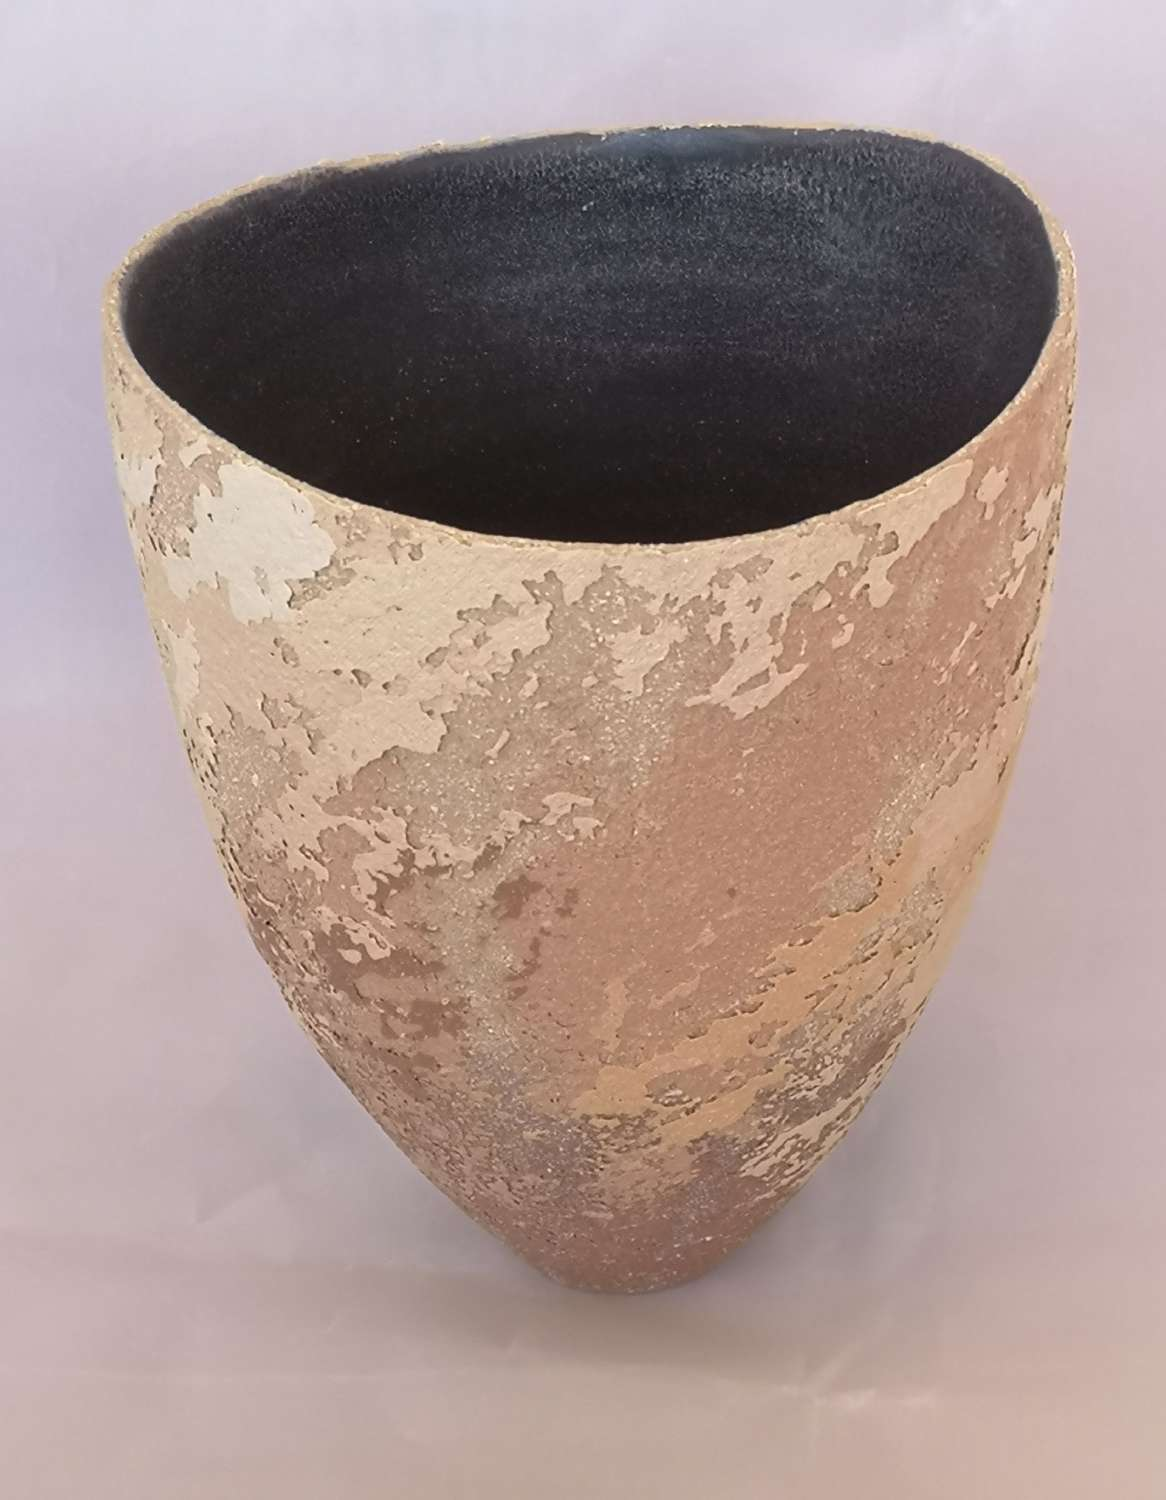 Contemporary French artisan vase or dish